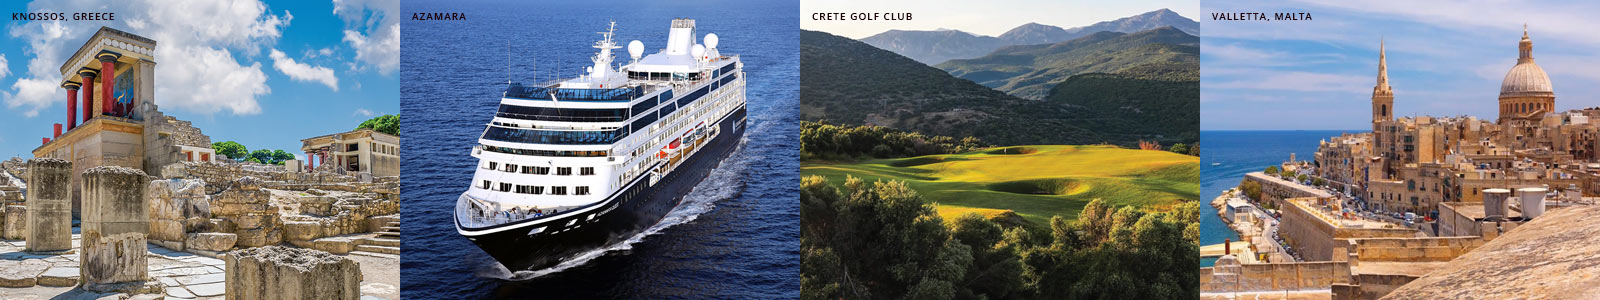 Mediterranean Islands Golf Vacation Tours and Golf Cruises